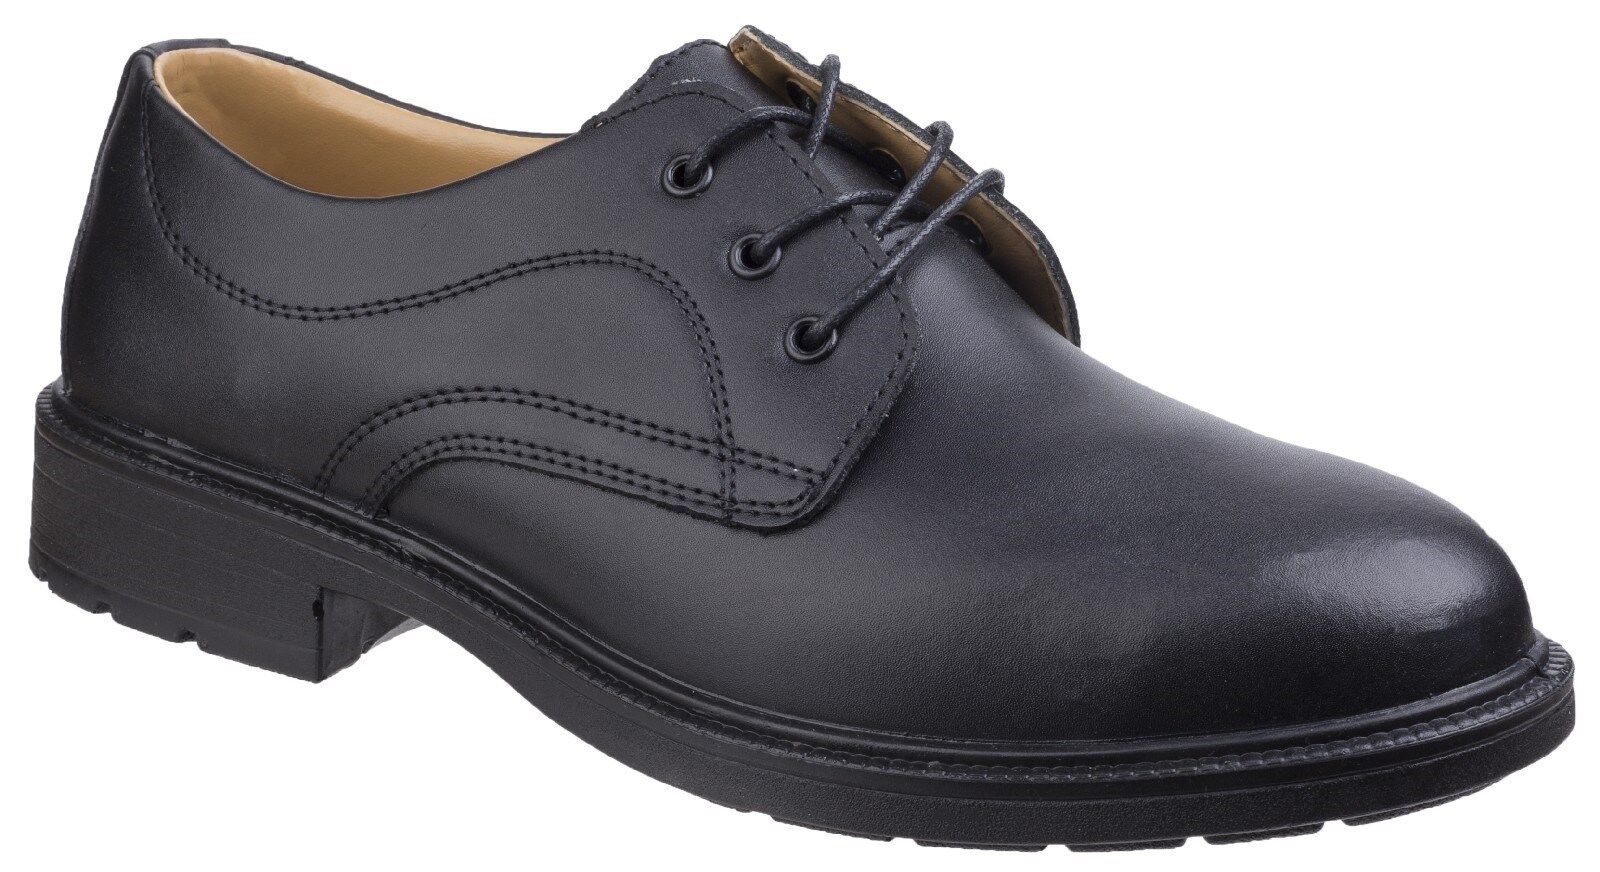 Mens Leather Safety Shoes Black Composite Non-Metal Safety Gibson Uniform